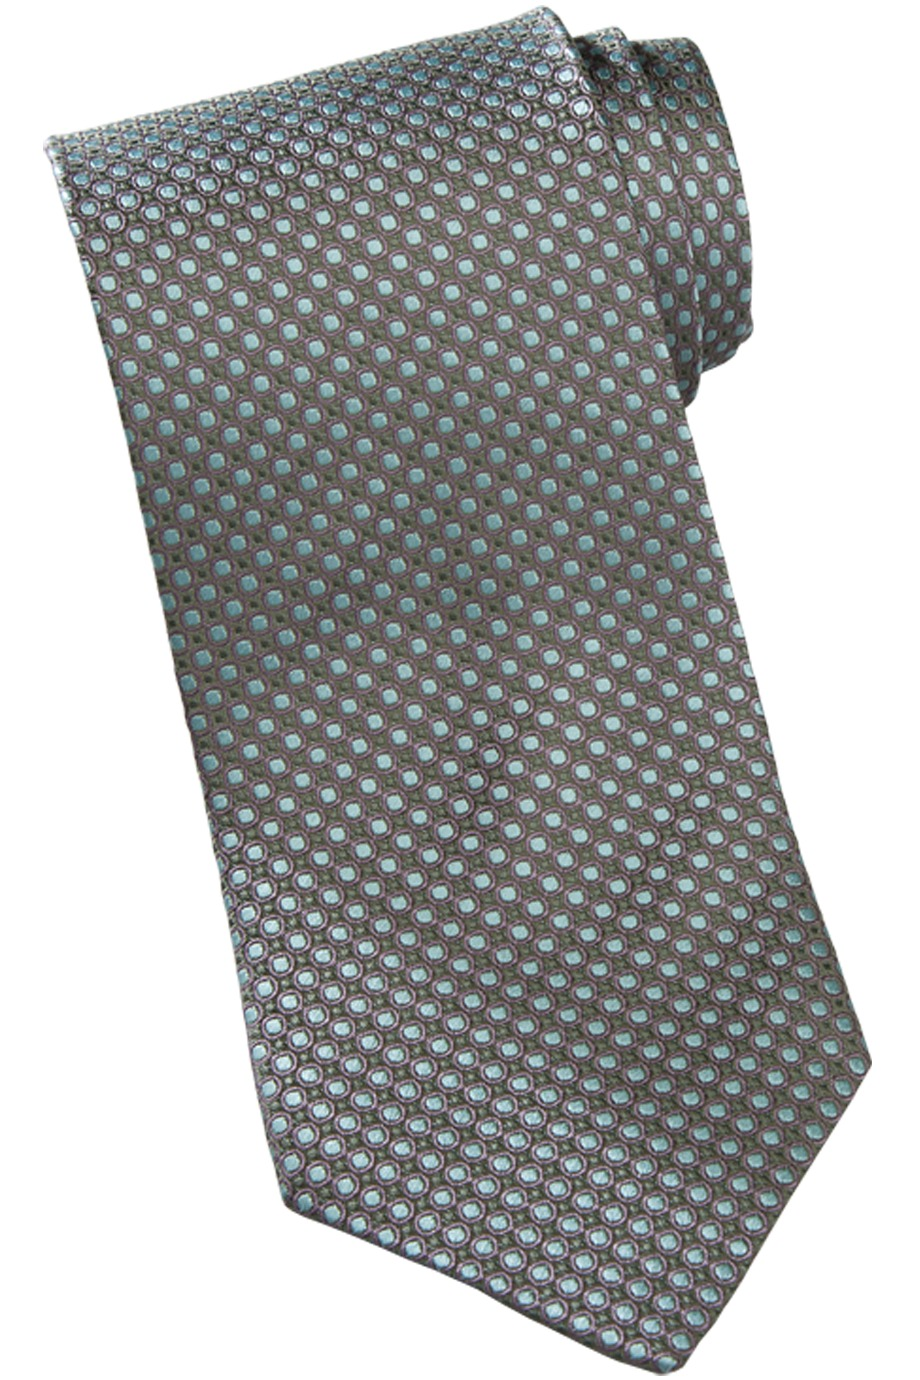 Edwards Garment CD00 - Circles And Dots Tie